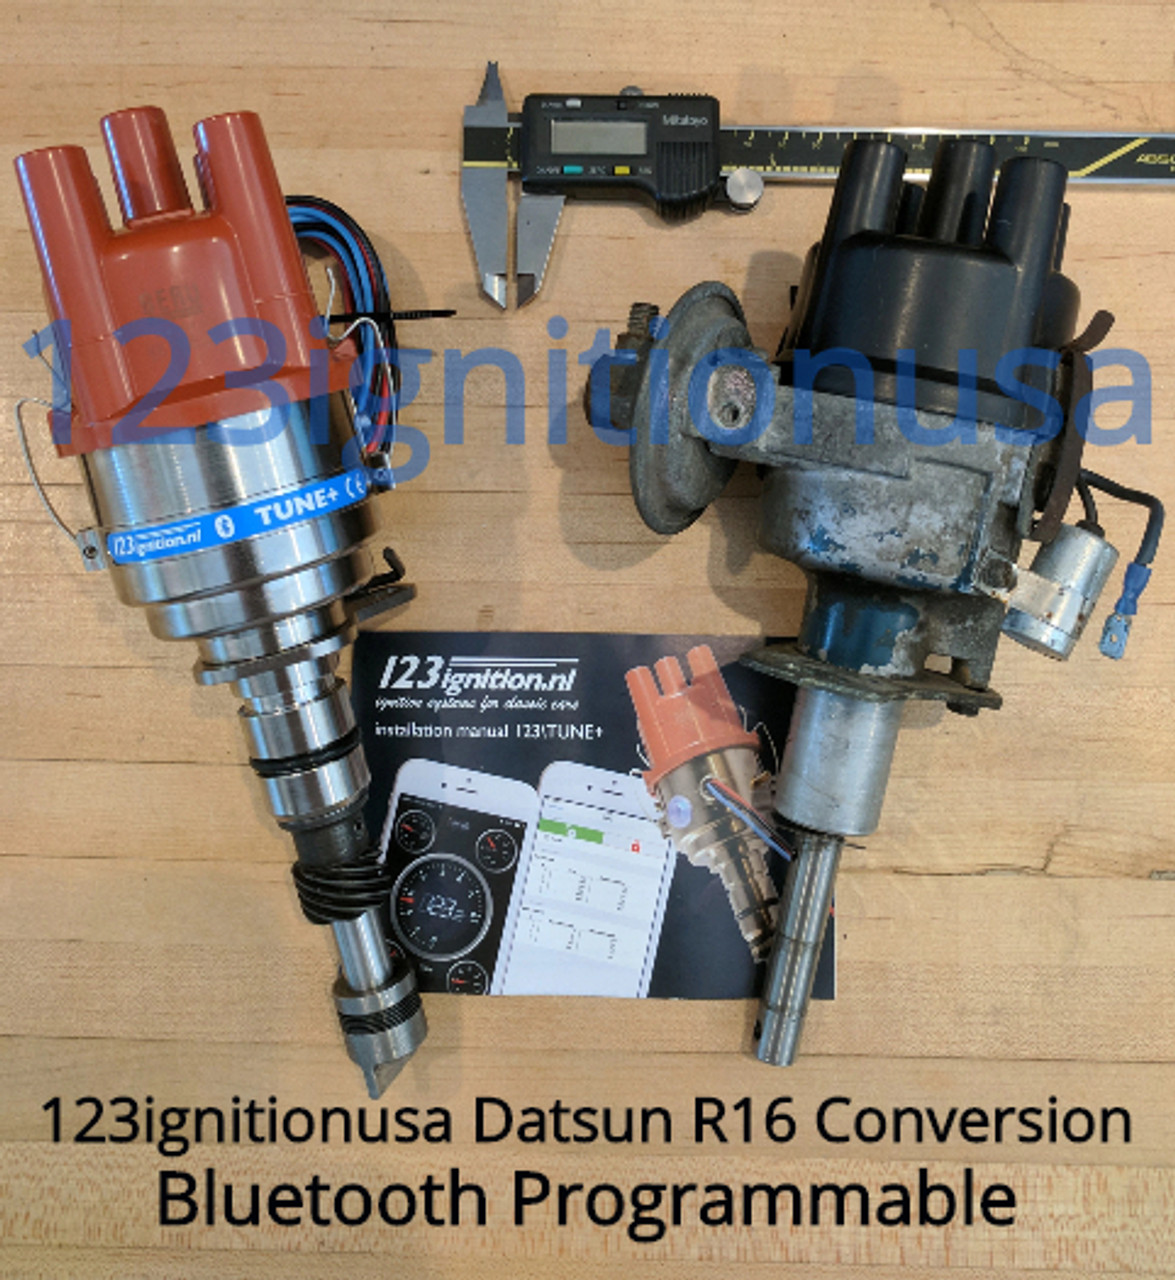 Datsun R16 Roadster Distributor (Bluetooth Programmable) R16 311,411,1600,2000,411SSS,U20,H20  L4 engine (Built to Order)($40 Refundable Core Charge) - No Refunds or cancellations